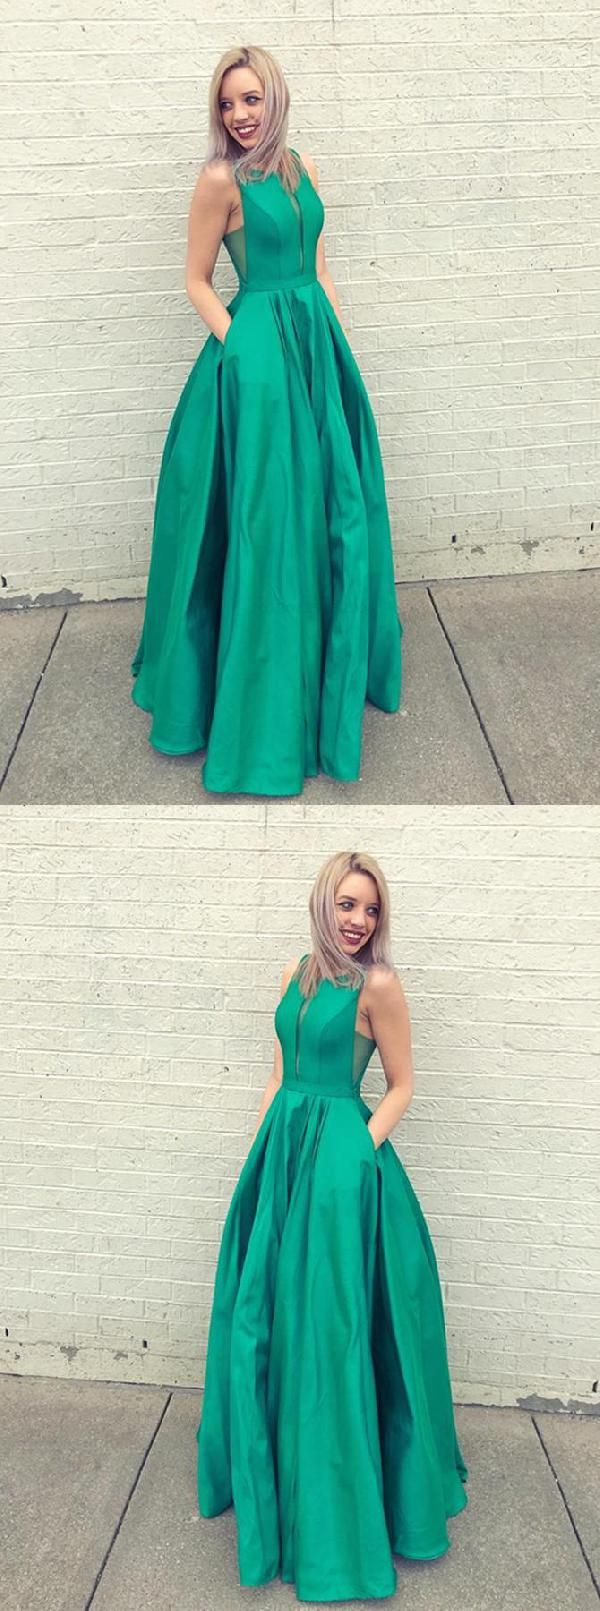 Outlet Fetching Prom Dresses Green Prom Dresses 2019 Prom Dresses A Line Prom Dresses 2019 Prom Prom Dresses With Pockets Green Prom Dress Prom Dresses Long